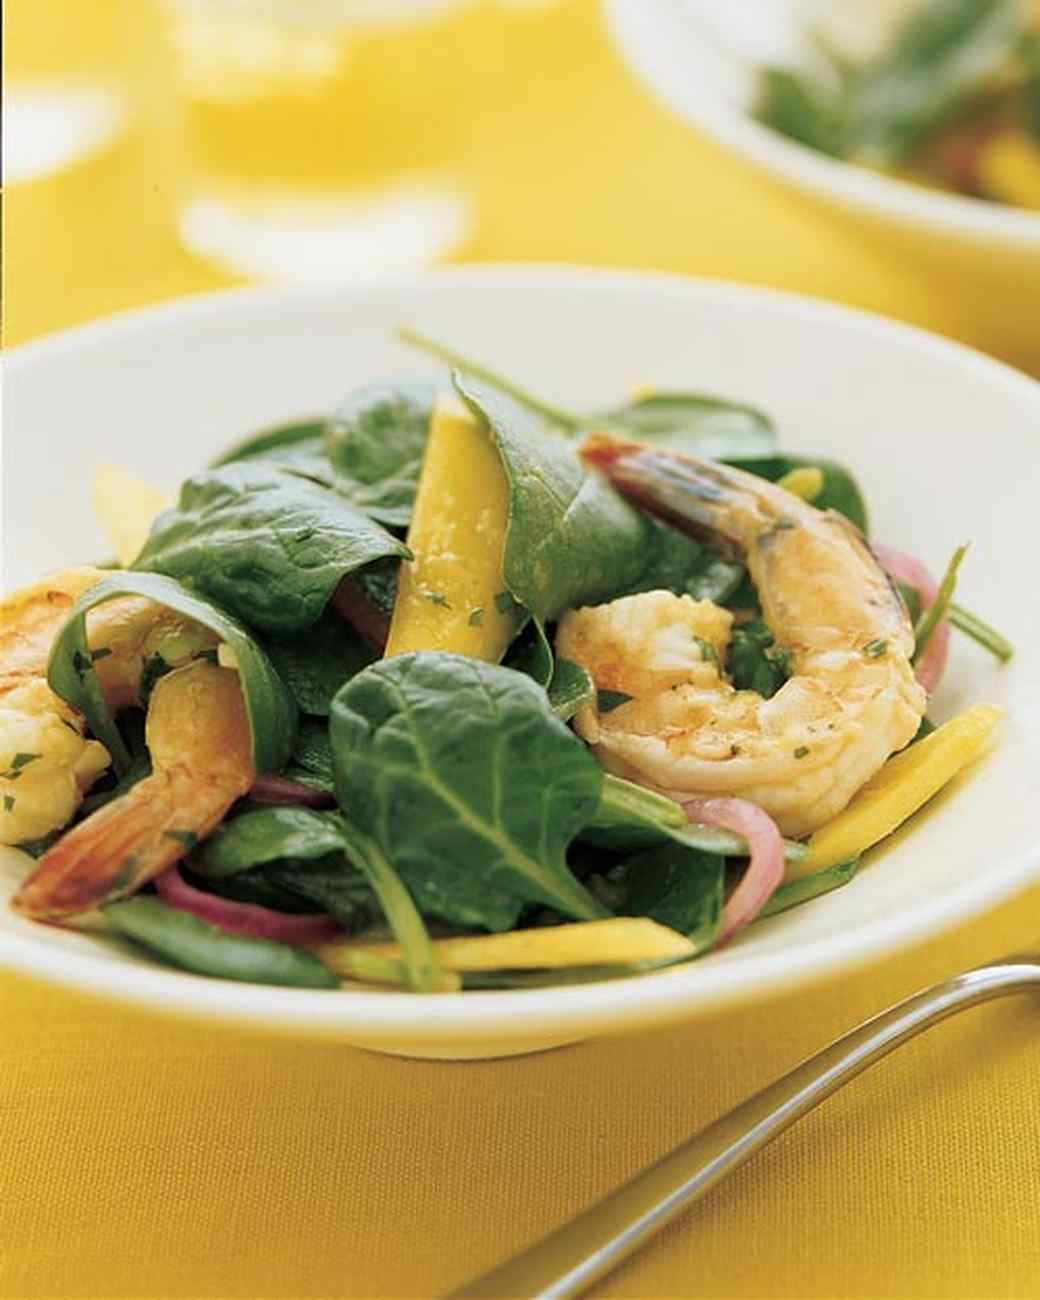 Spinach Salad with Spiced Shrimp and Mango